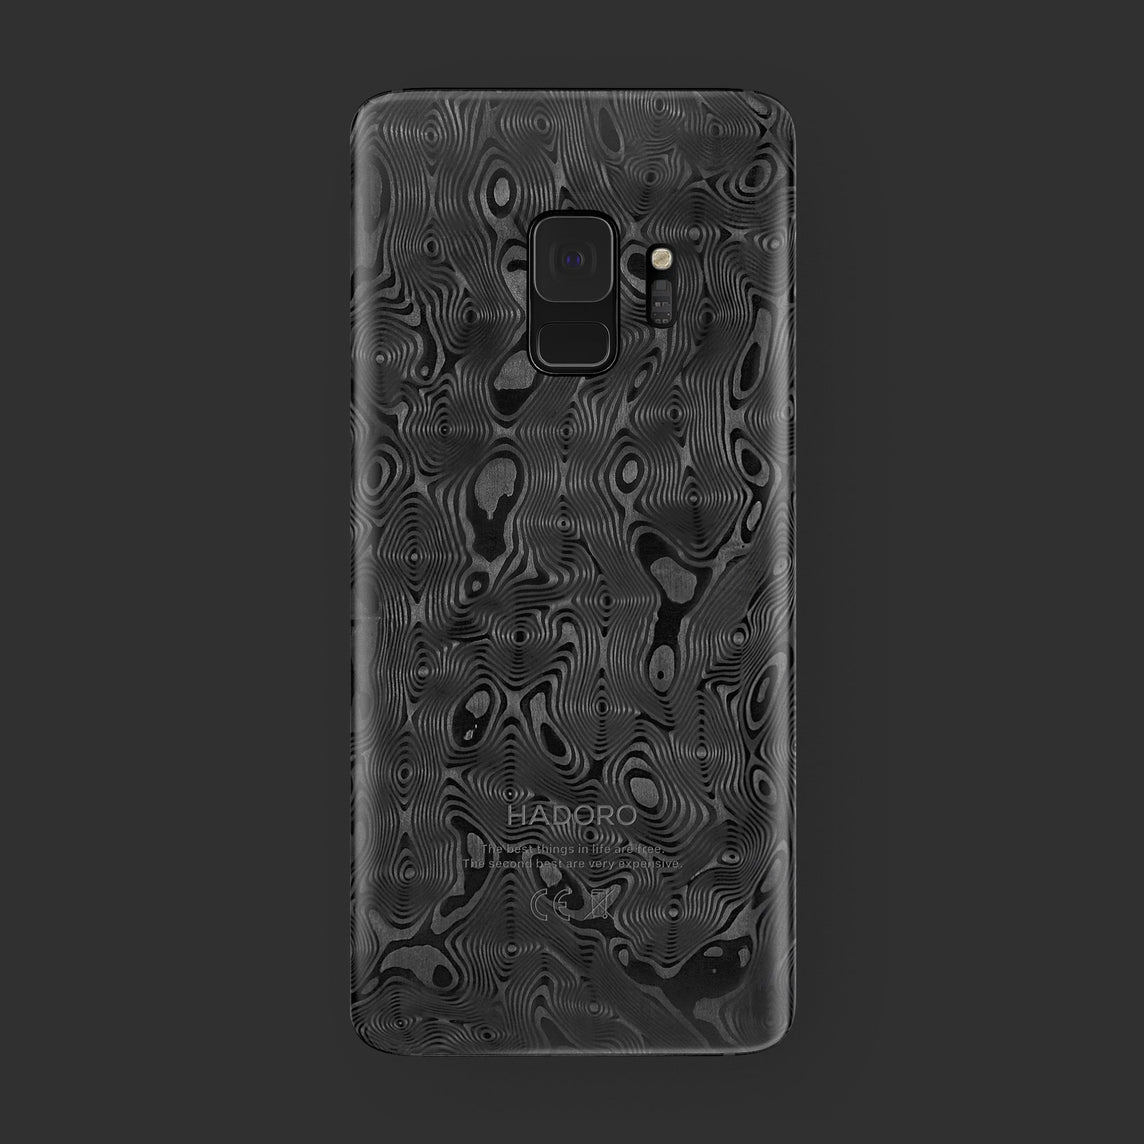 Hadoro Samsung Galaxy S9 [Black Alligator] [model:custom-samsung-s9] [colour:carbon]